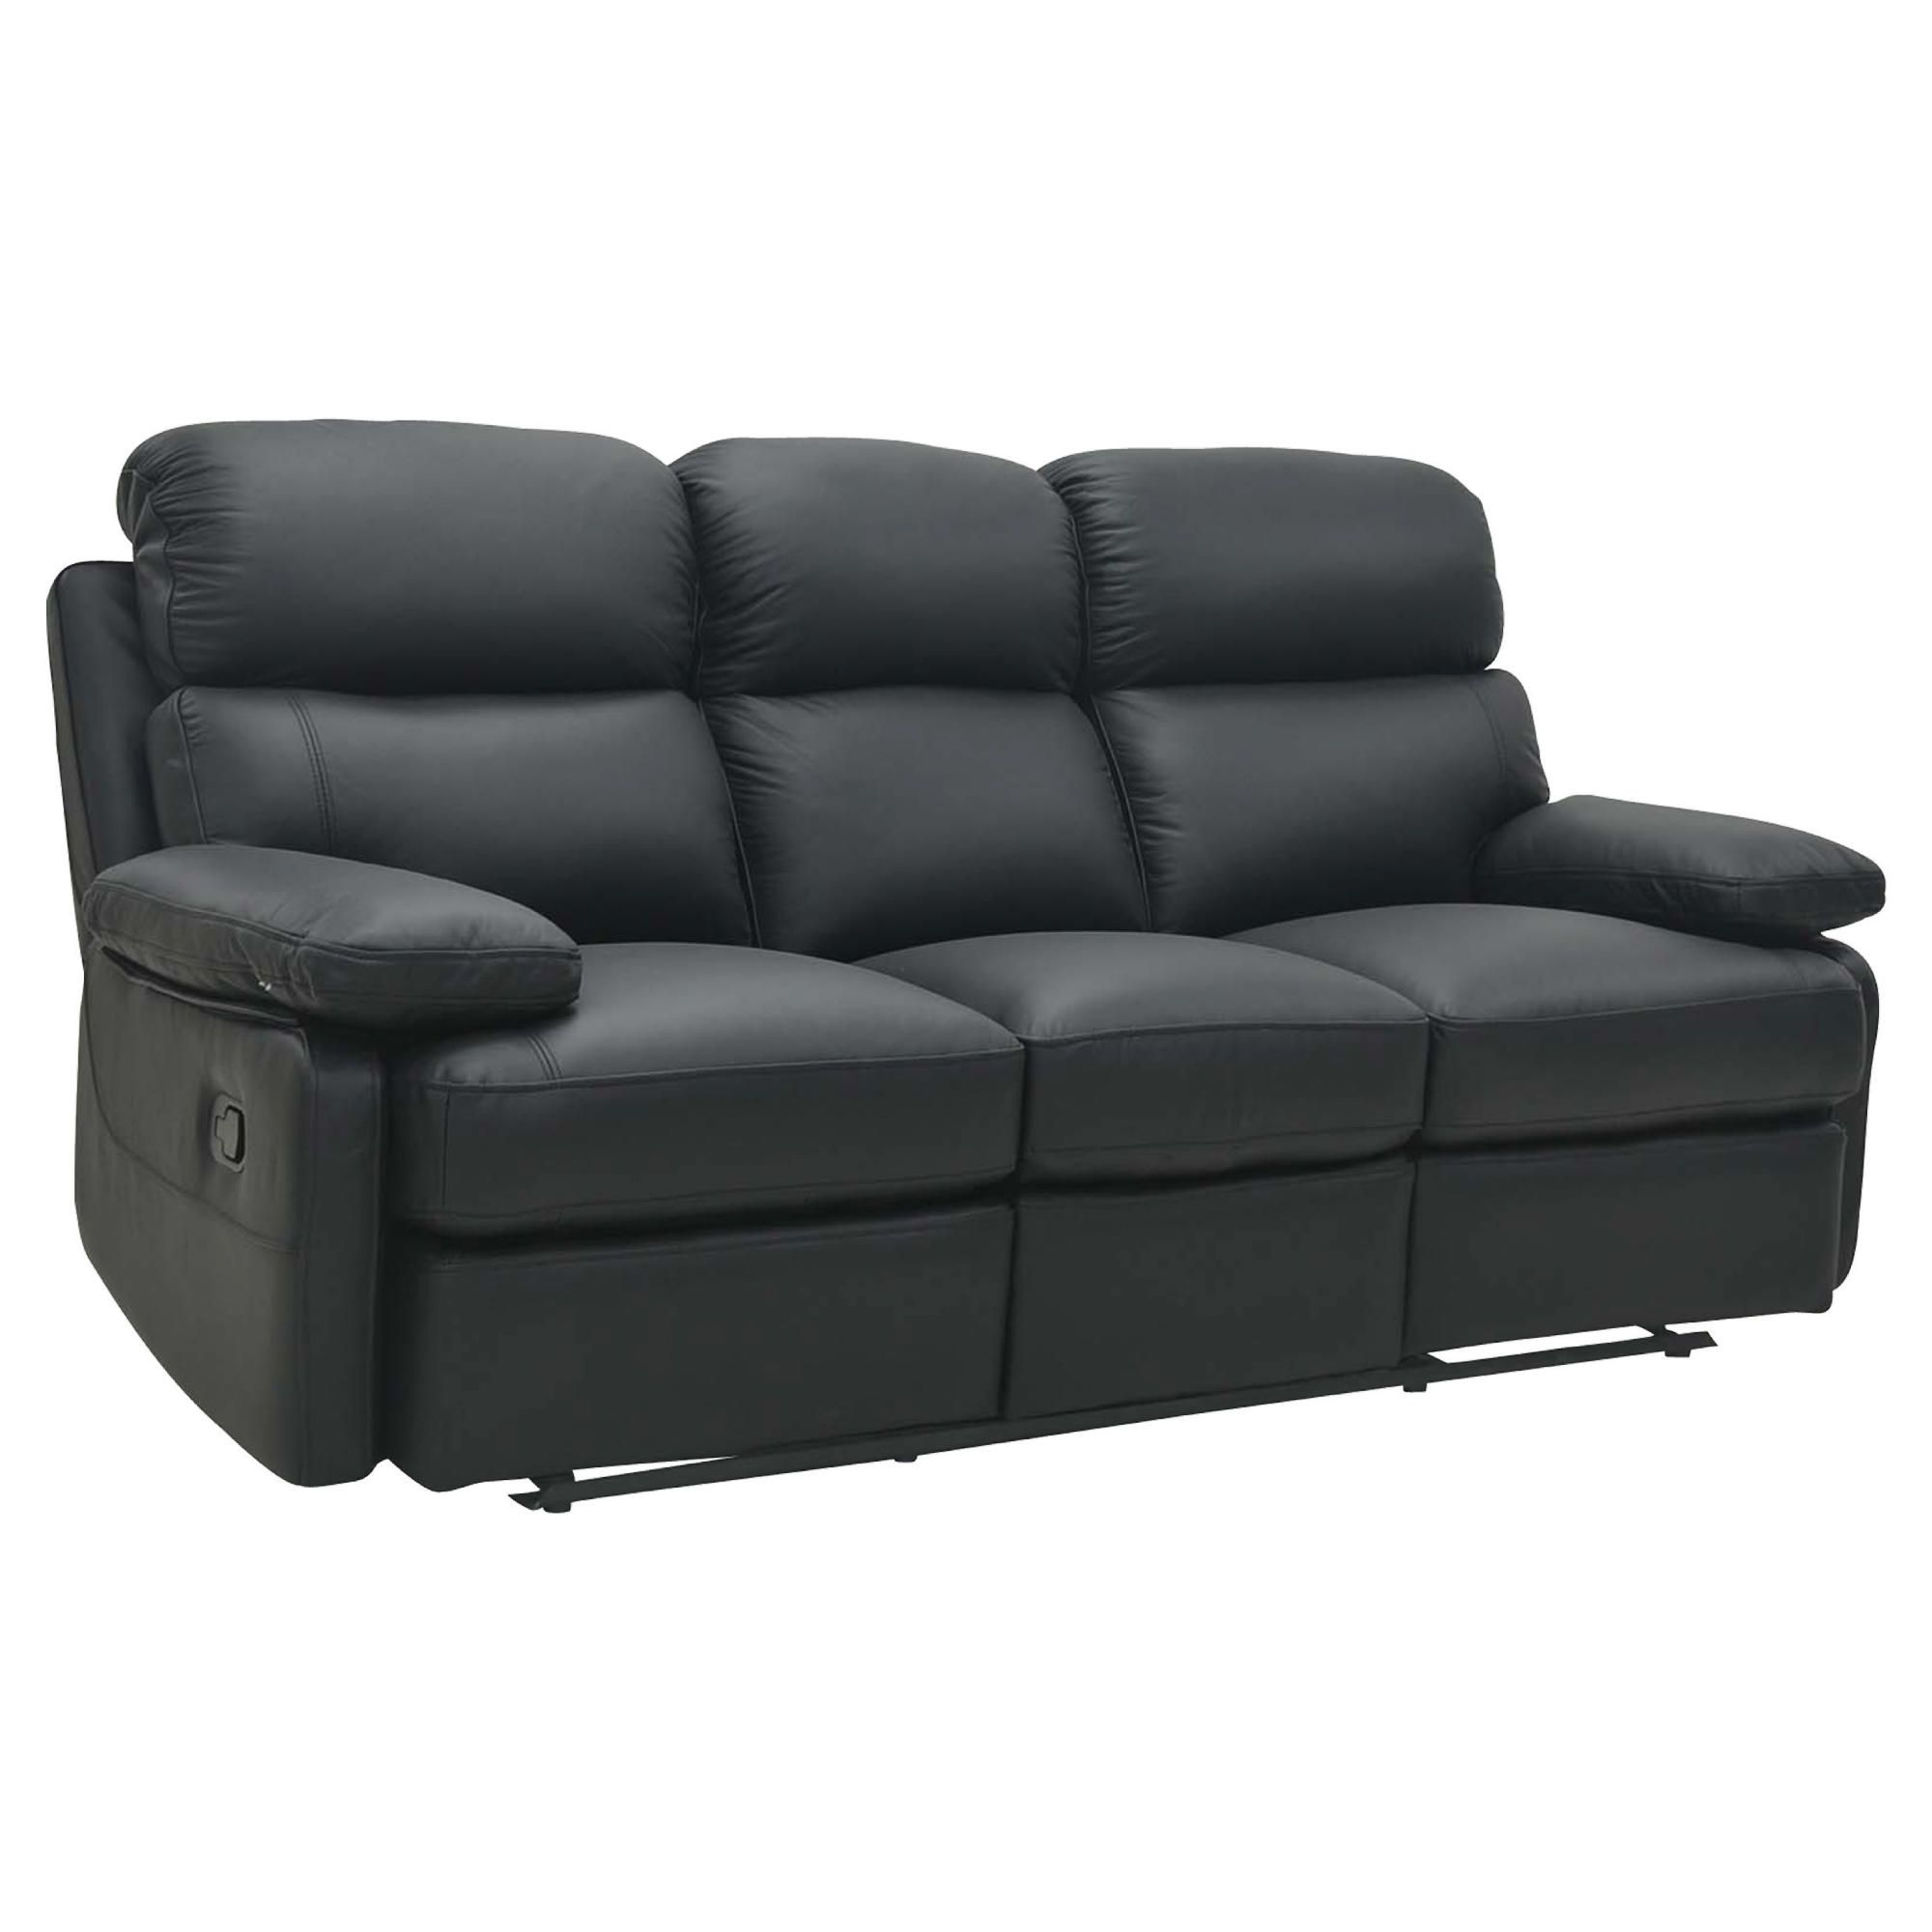 Cordova Leather Large Recliner Sofa Black at Tesco Direct